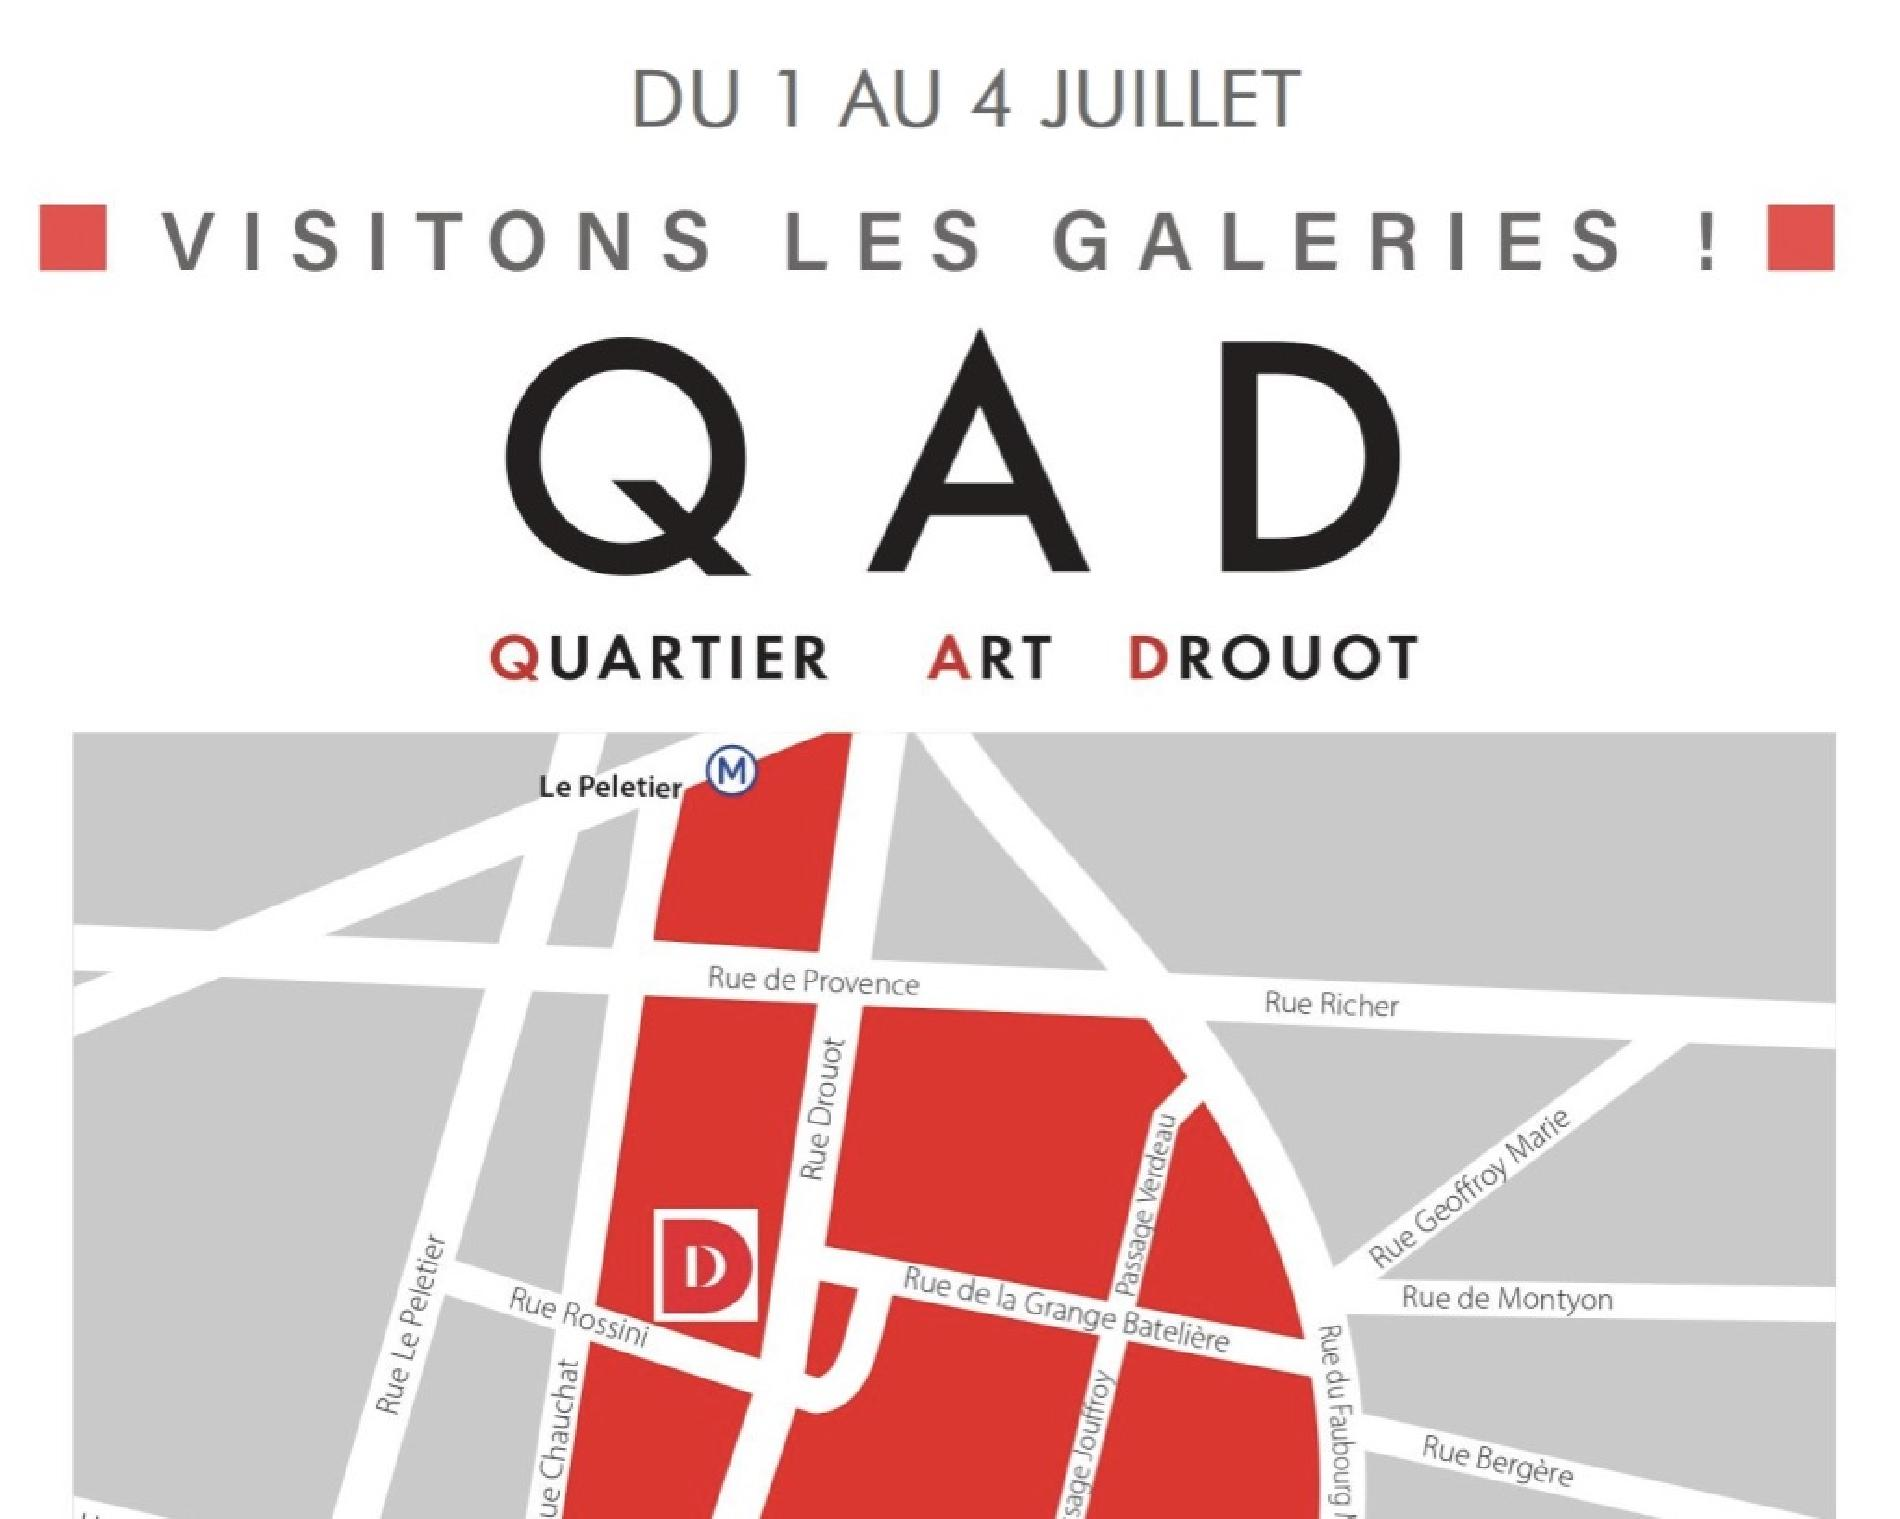 Artistes divers, Quartier Art Drouot I Visit the galleries!